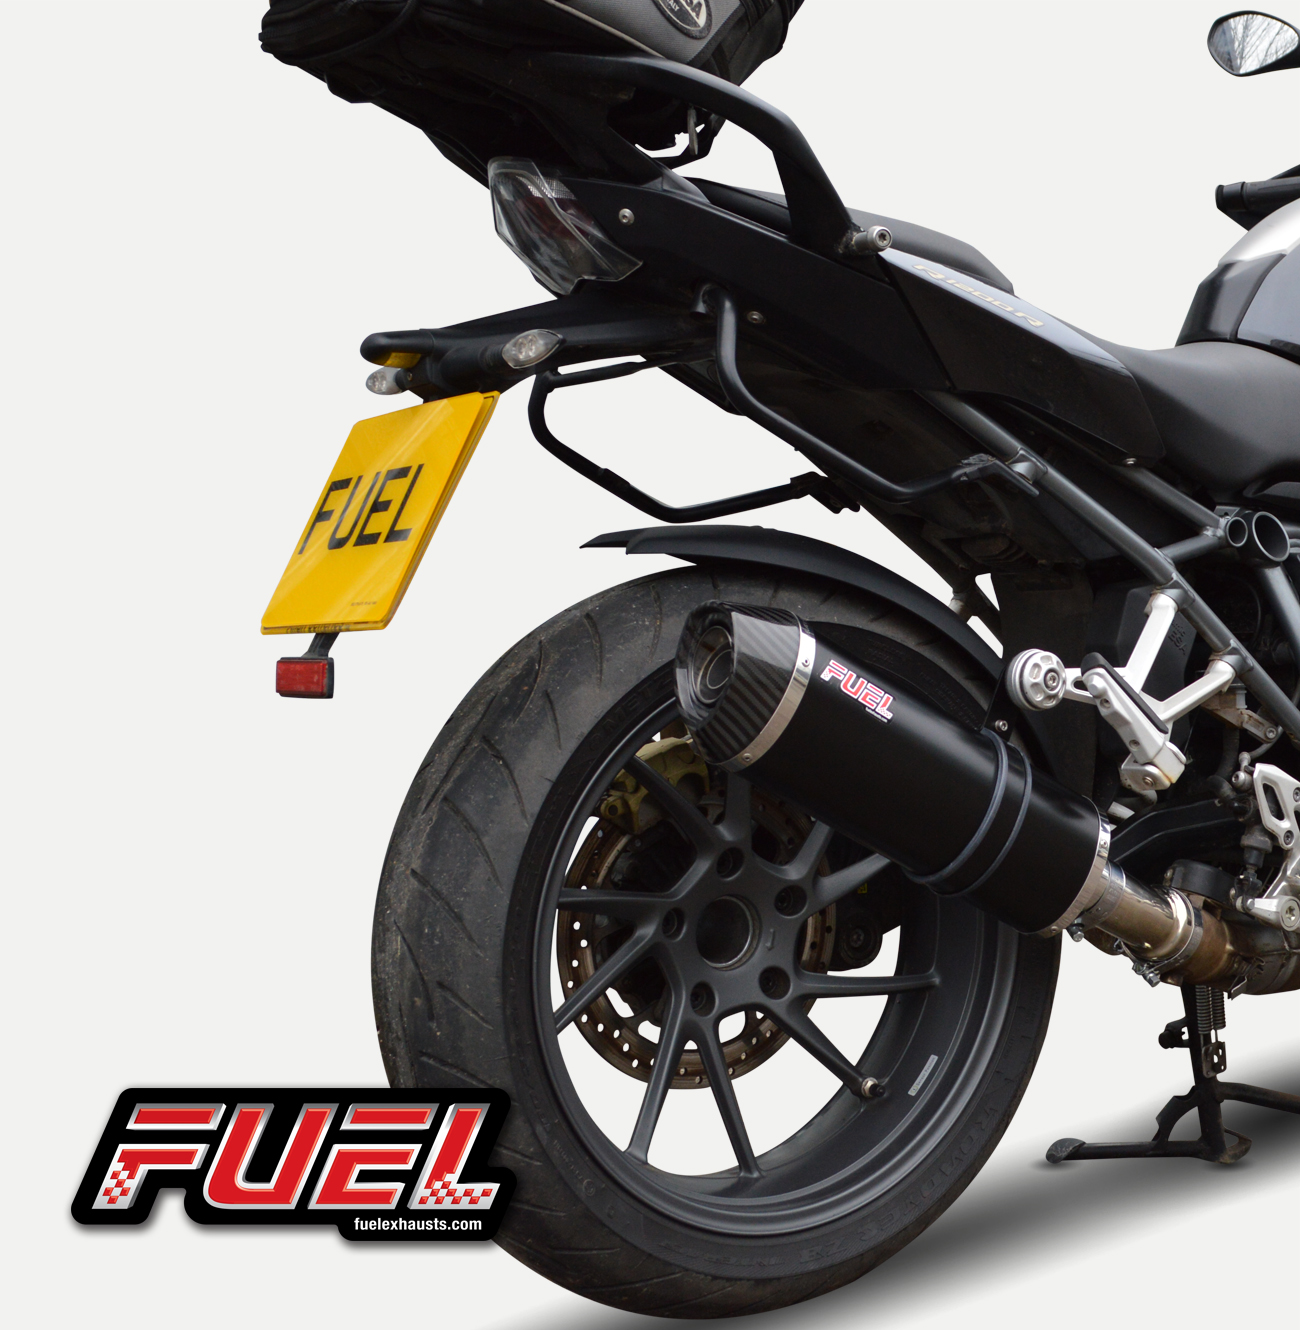 Bmw R1200r 2015 Fuel Exhausts Available Now